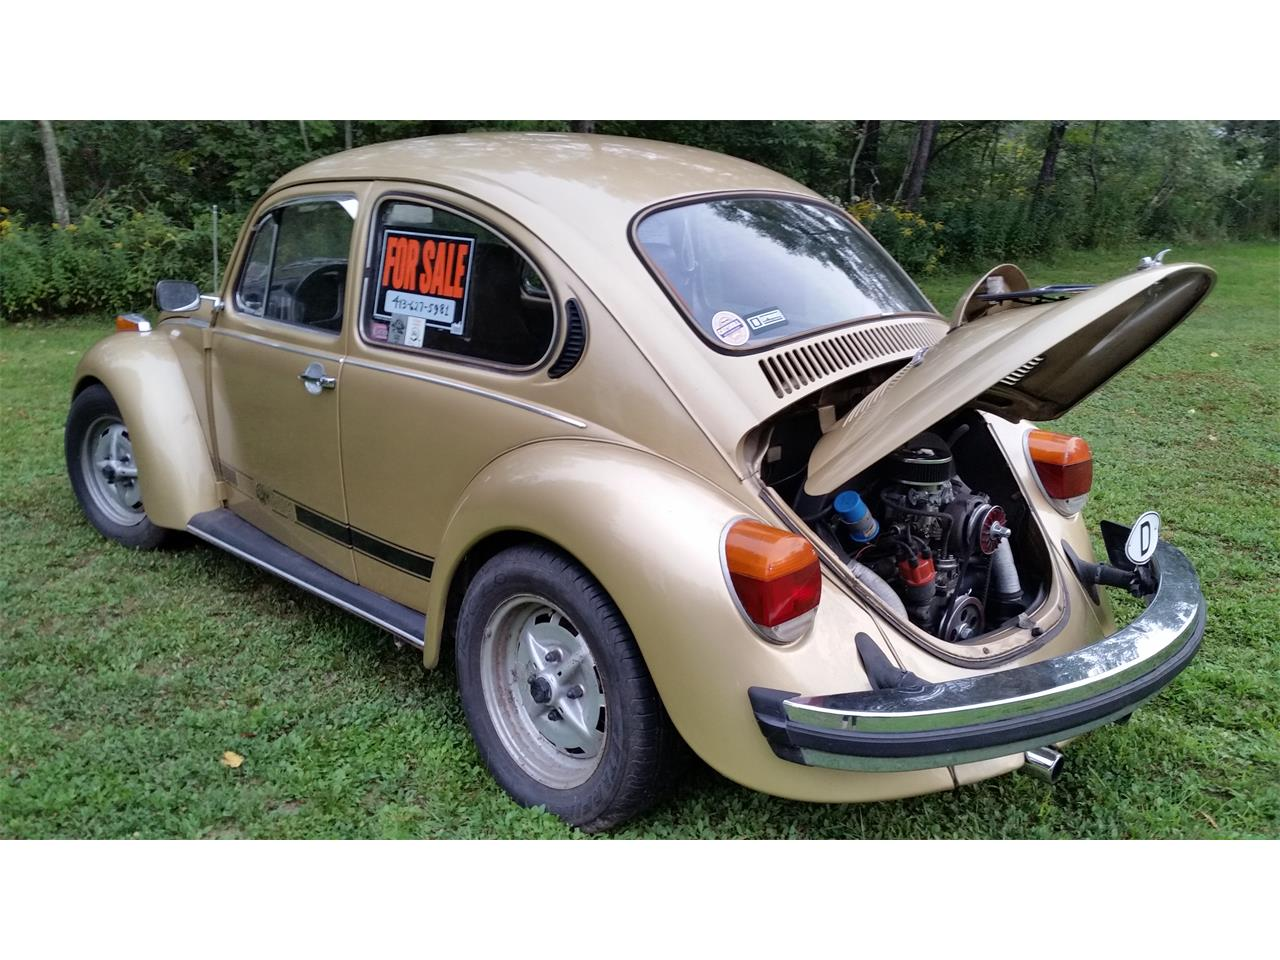 Large Picture of '74 Volkswagen Super Beetle located in New York - $10,500.00 - OGY2